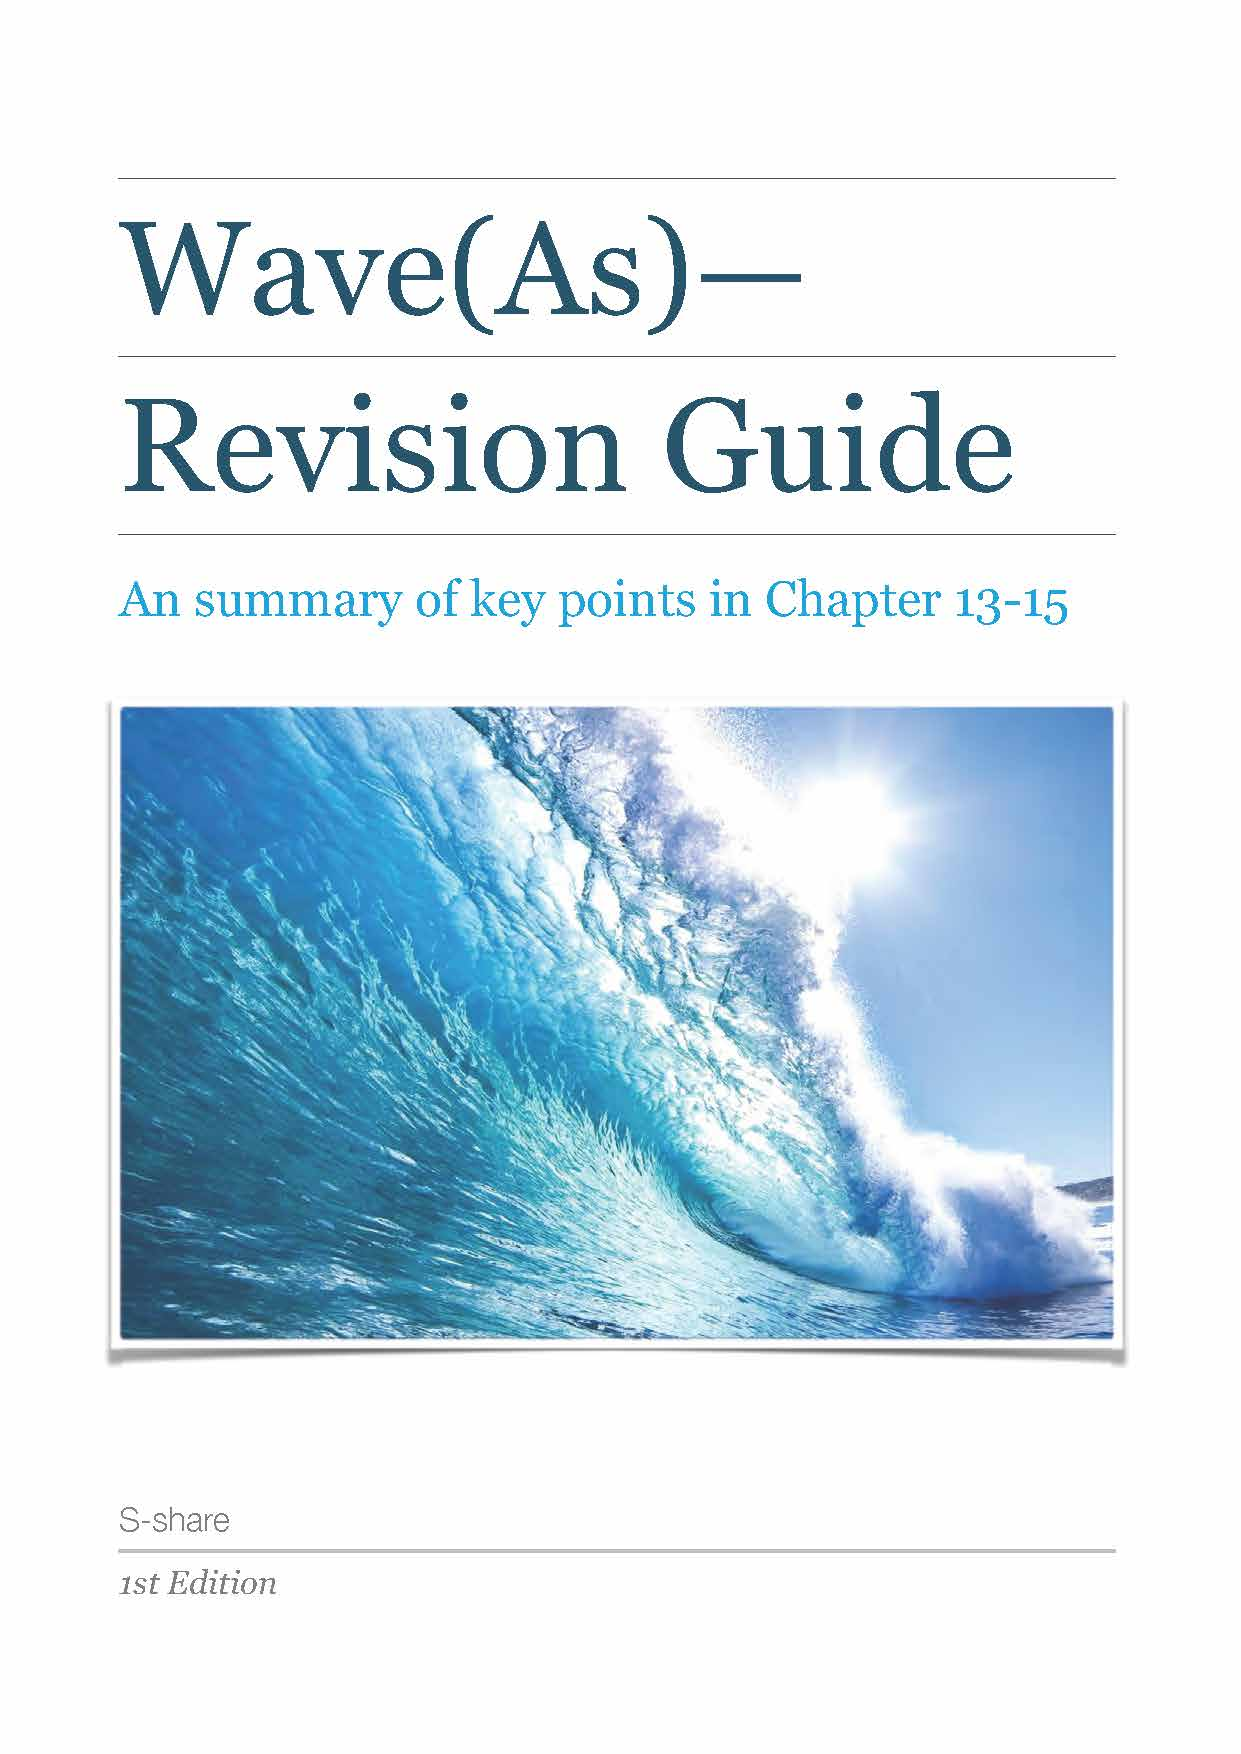 As_WaveRevisionGuide1_Jess_页面_01.jpg